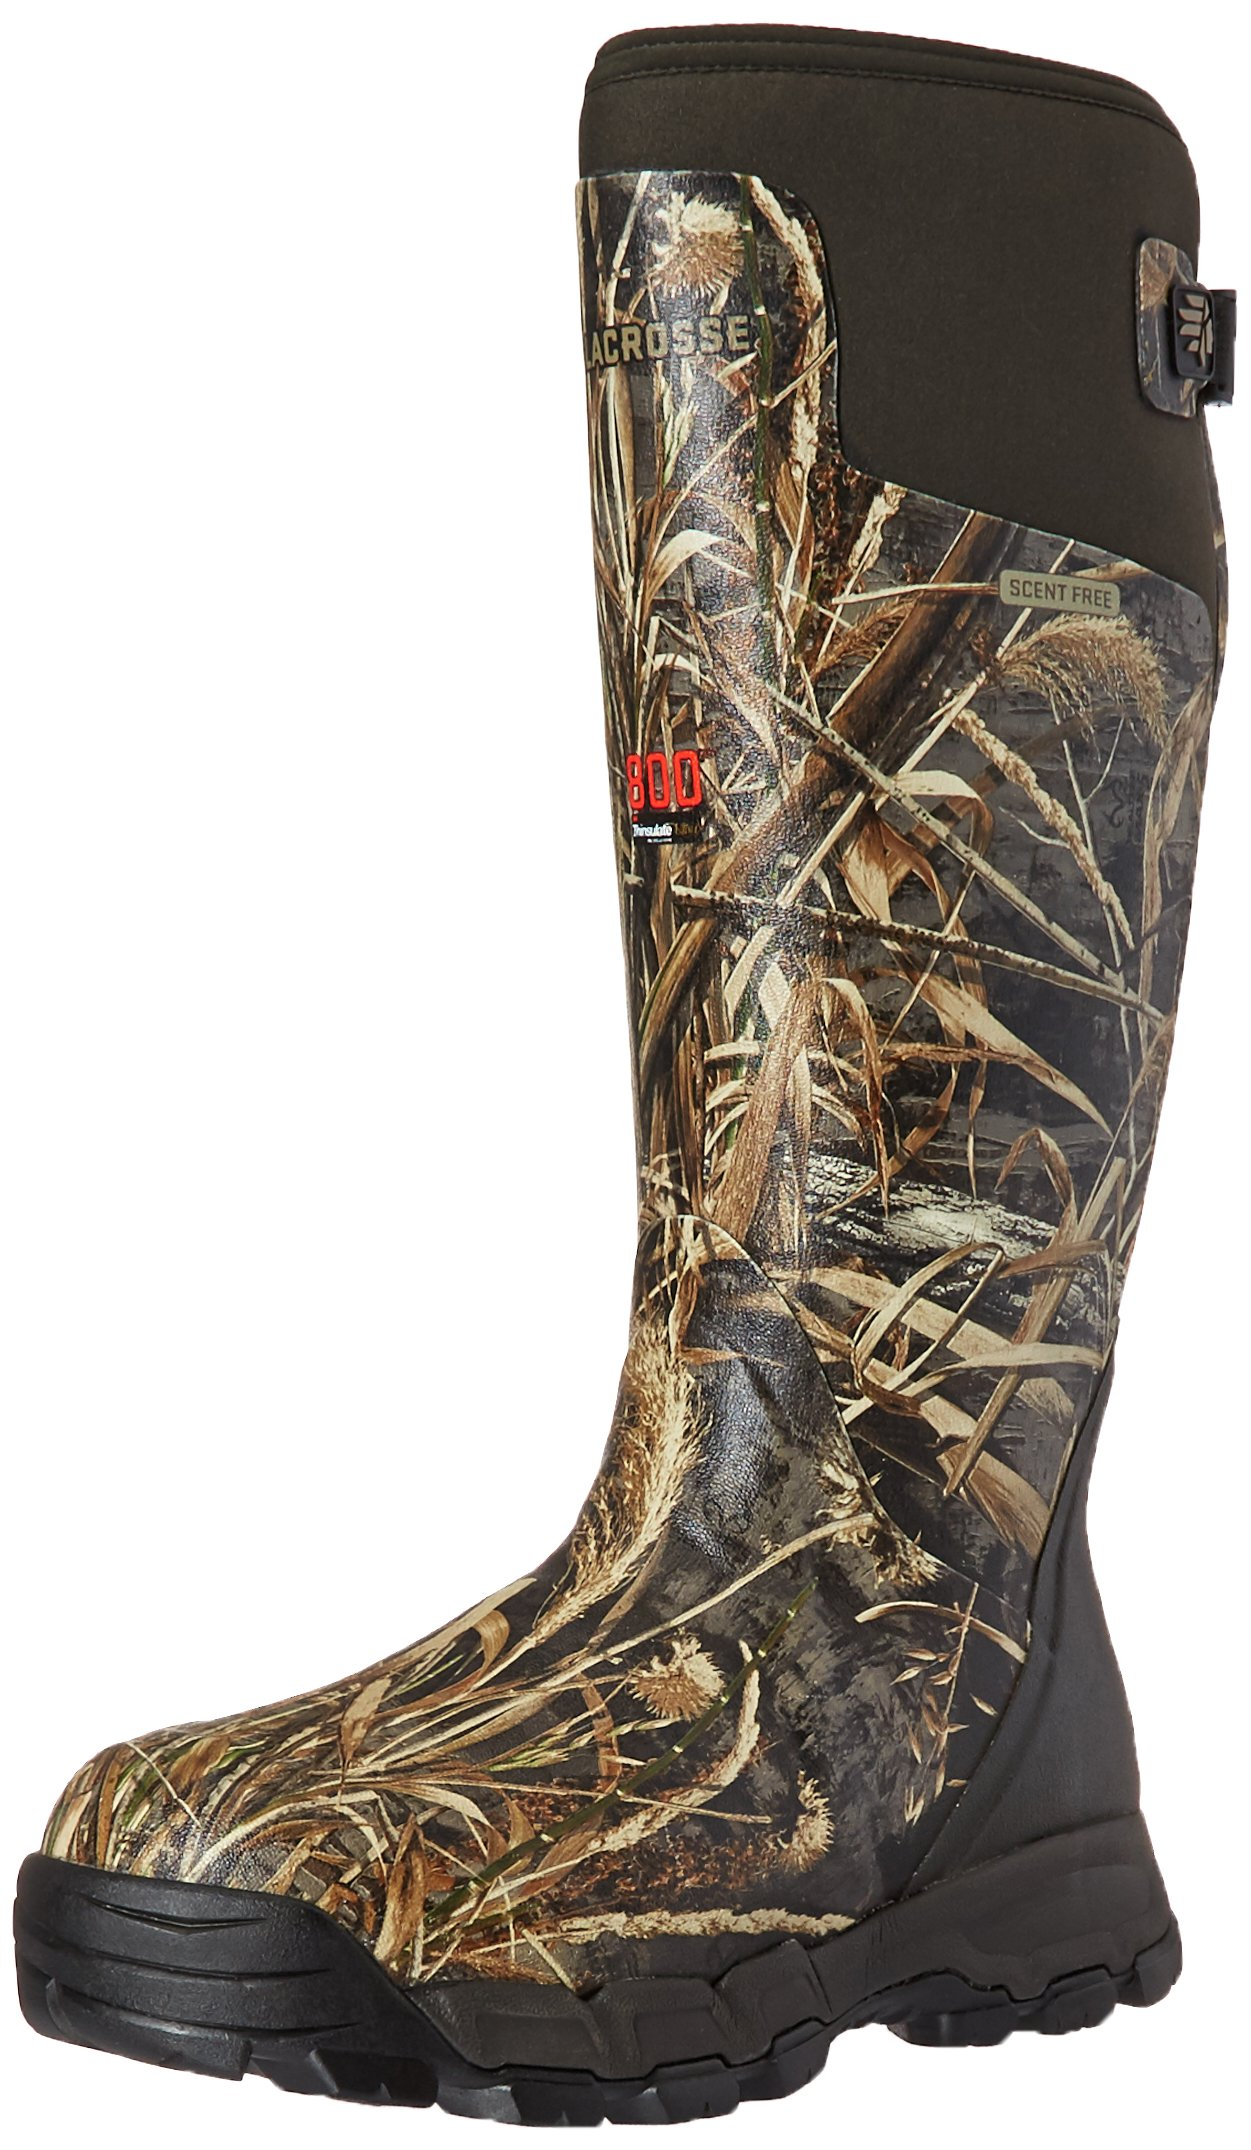 Lacrosse Men's Alphaburly Pro 18'' 800G Hunting Shoes, Realtree Max-4, 15 M US by Lacrosse